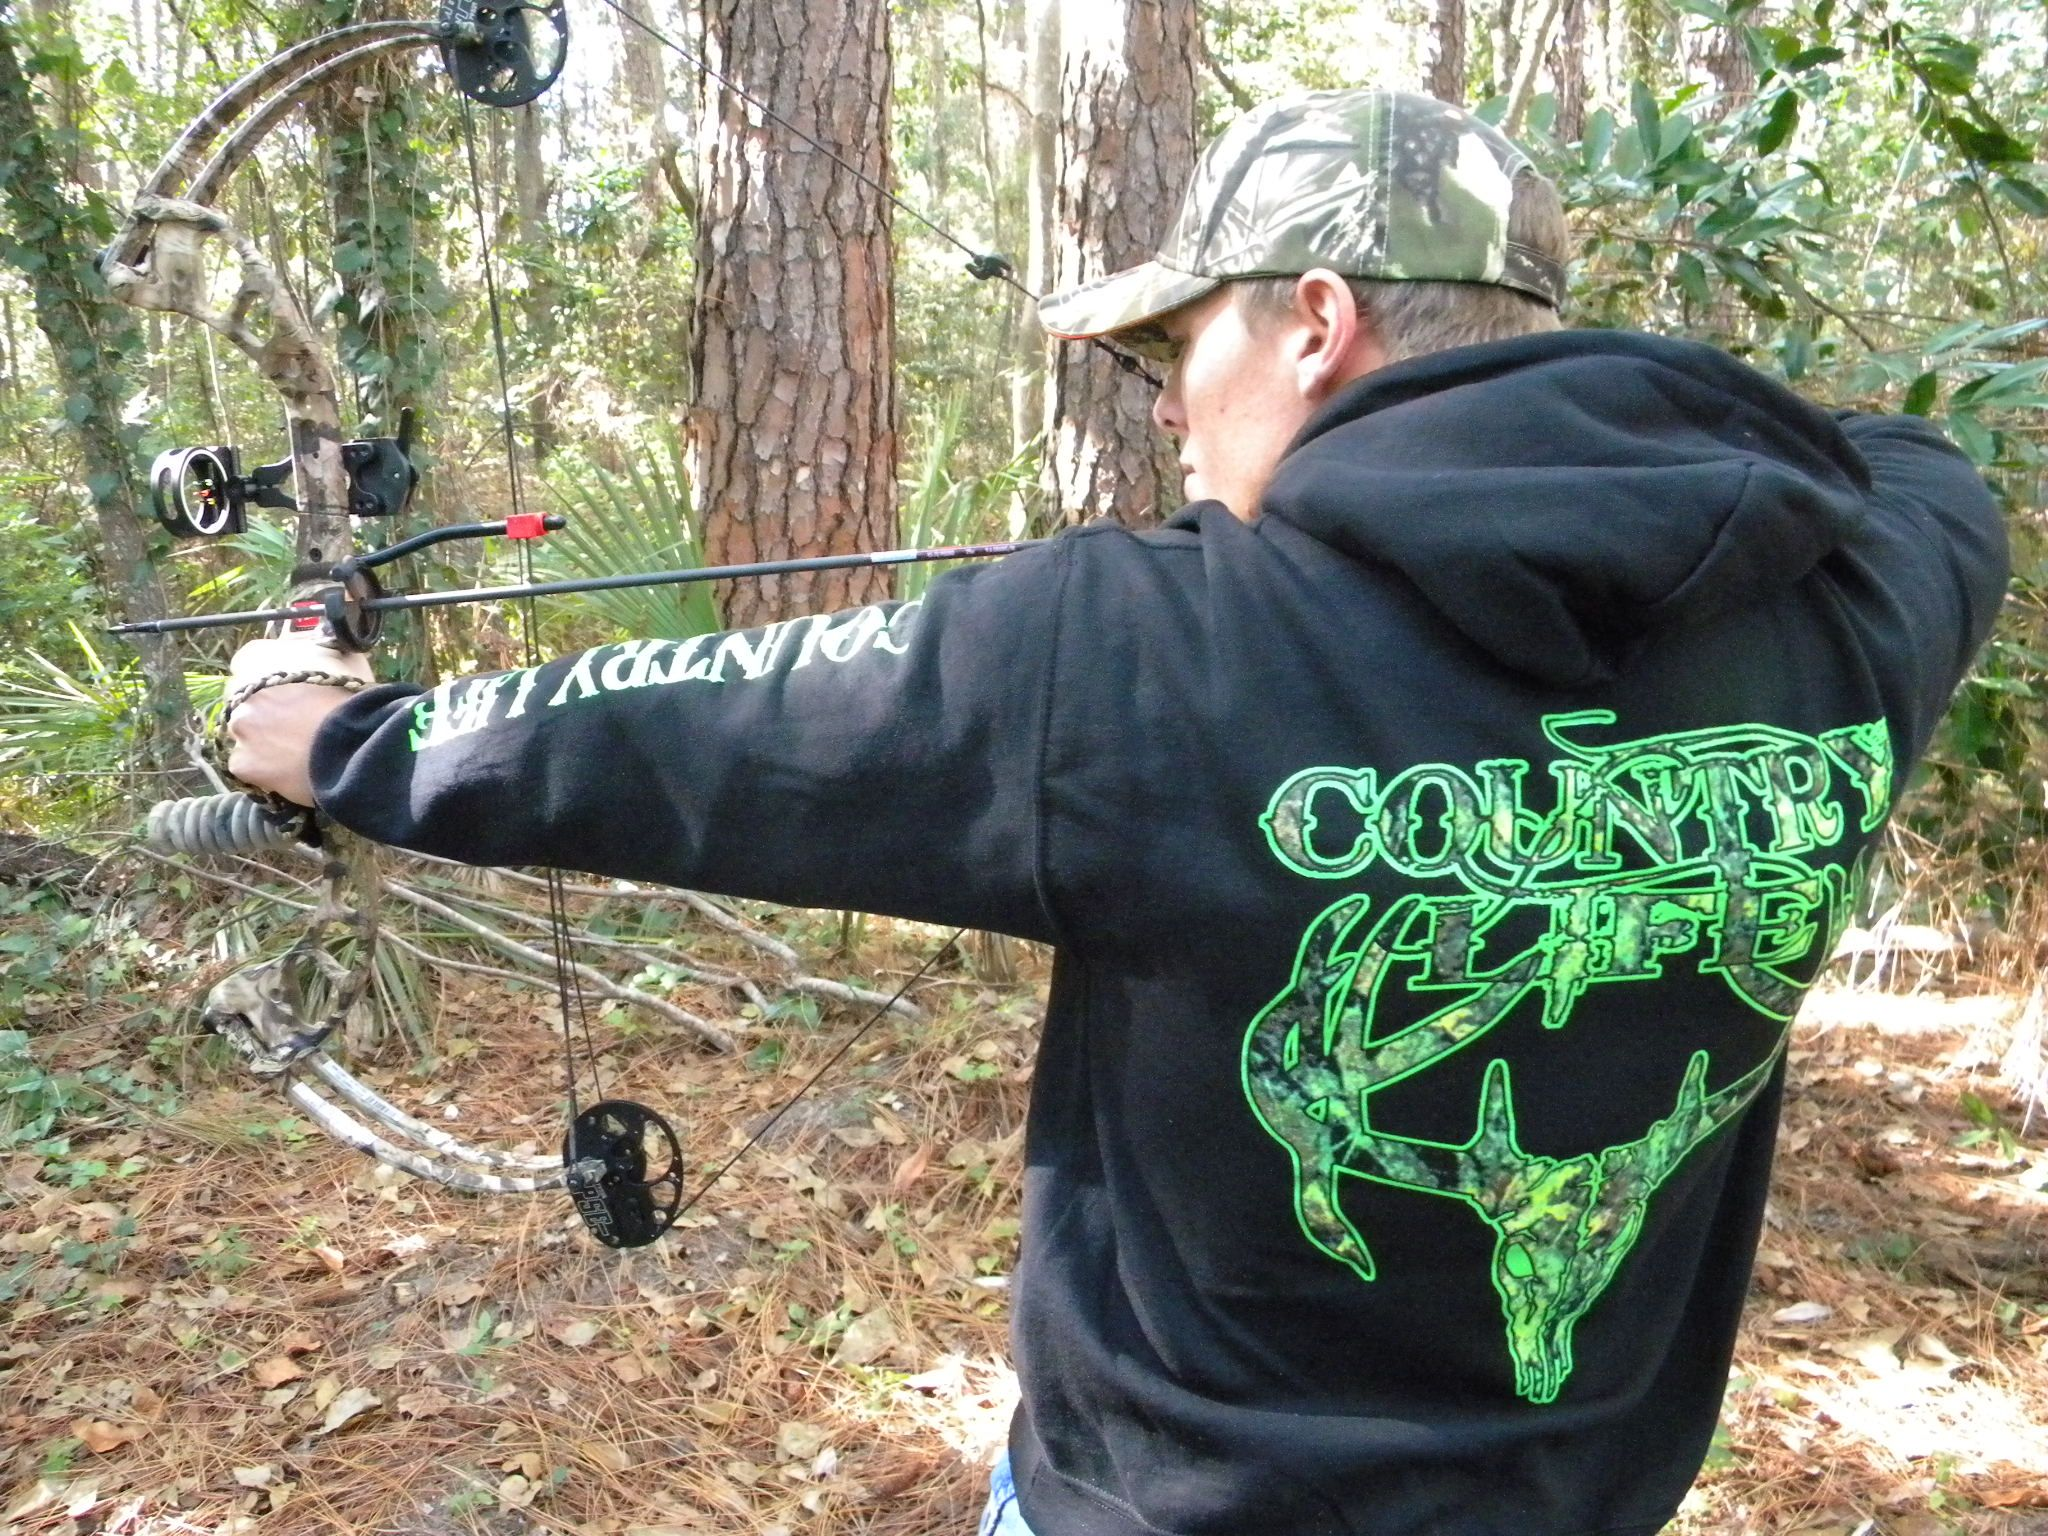 Hunting for a great hoodie? Order our popular Green Skull Hoodie from www.countrylifeoutfitters.com